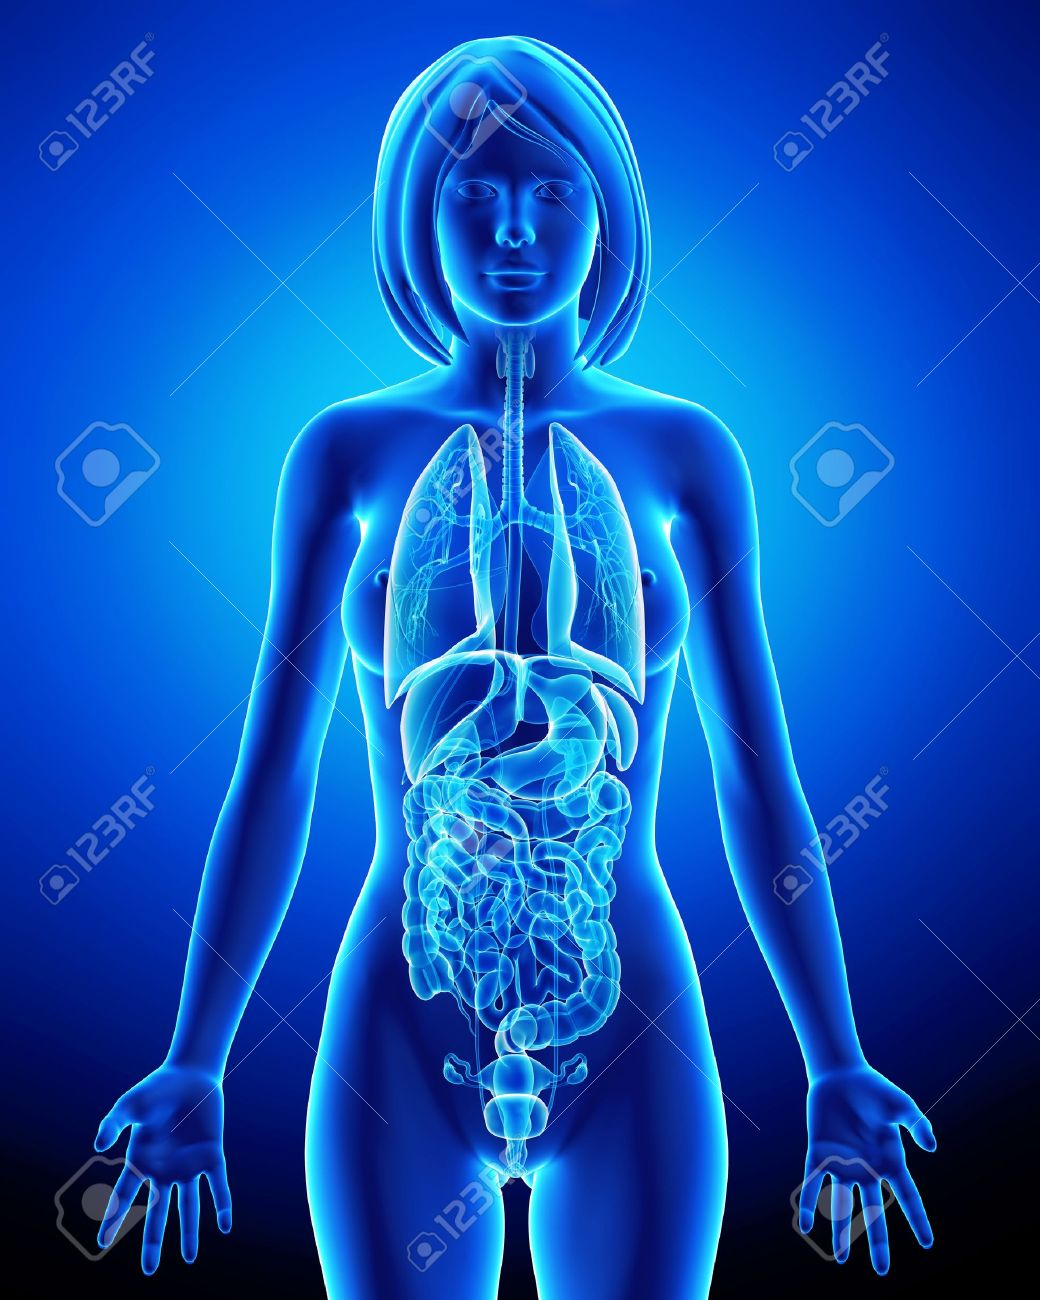 All Organs Of Female Body In Blue X-ray Loop Stock Photo, Picture ...